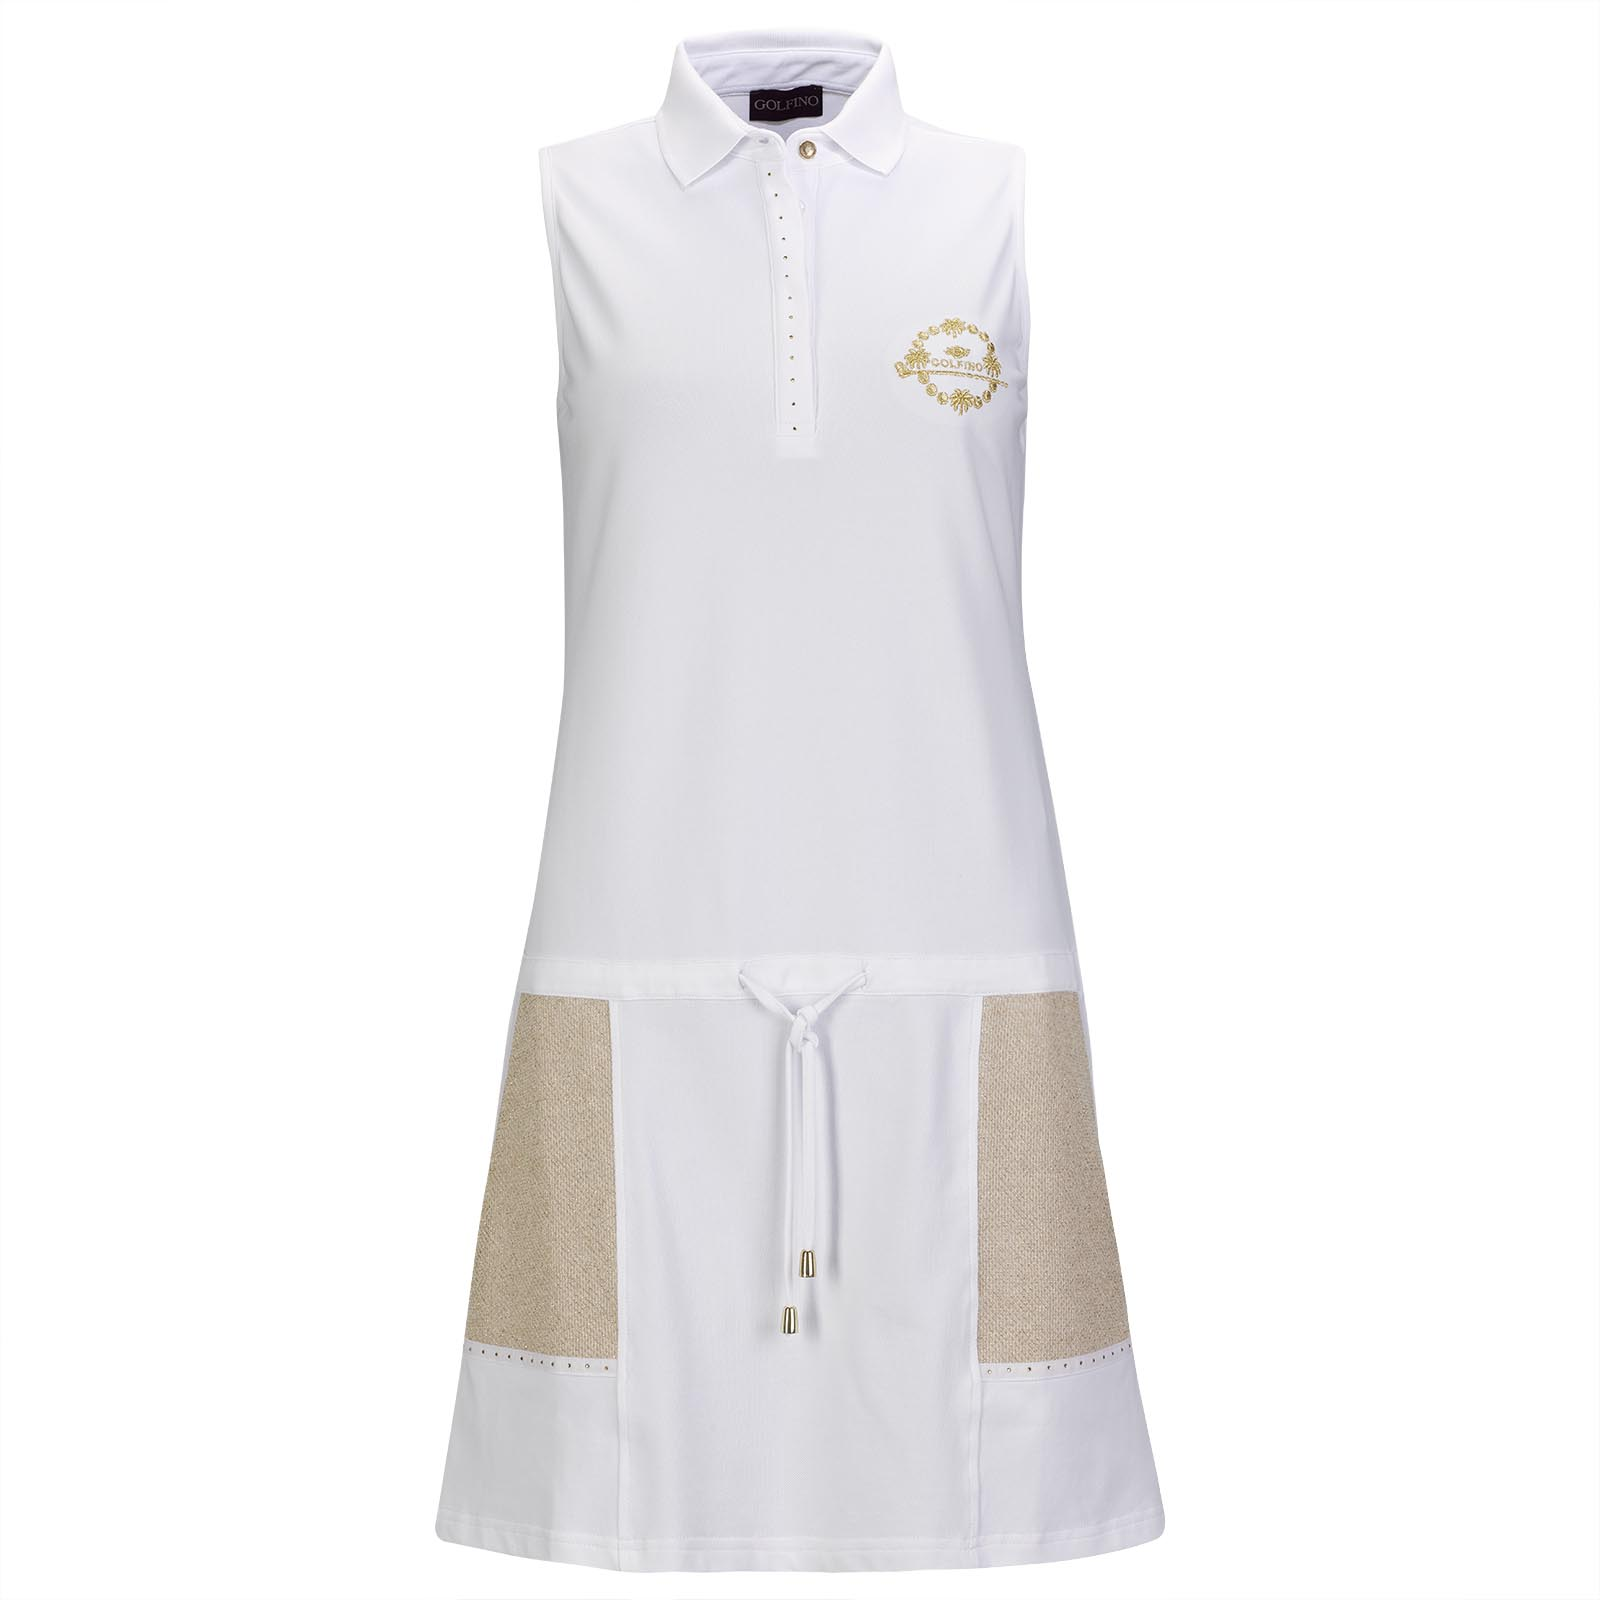 Damen Piqué-Golfkleid mit Sunprotection und Strassapplikationen